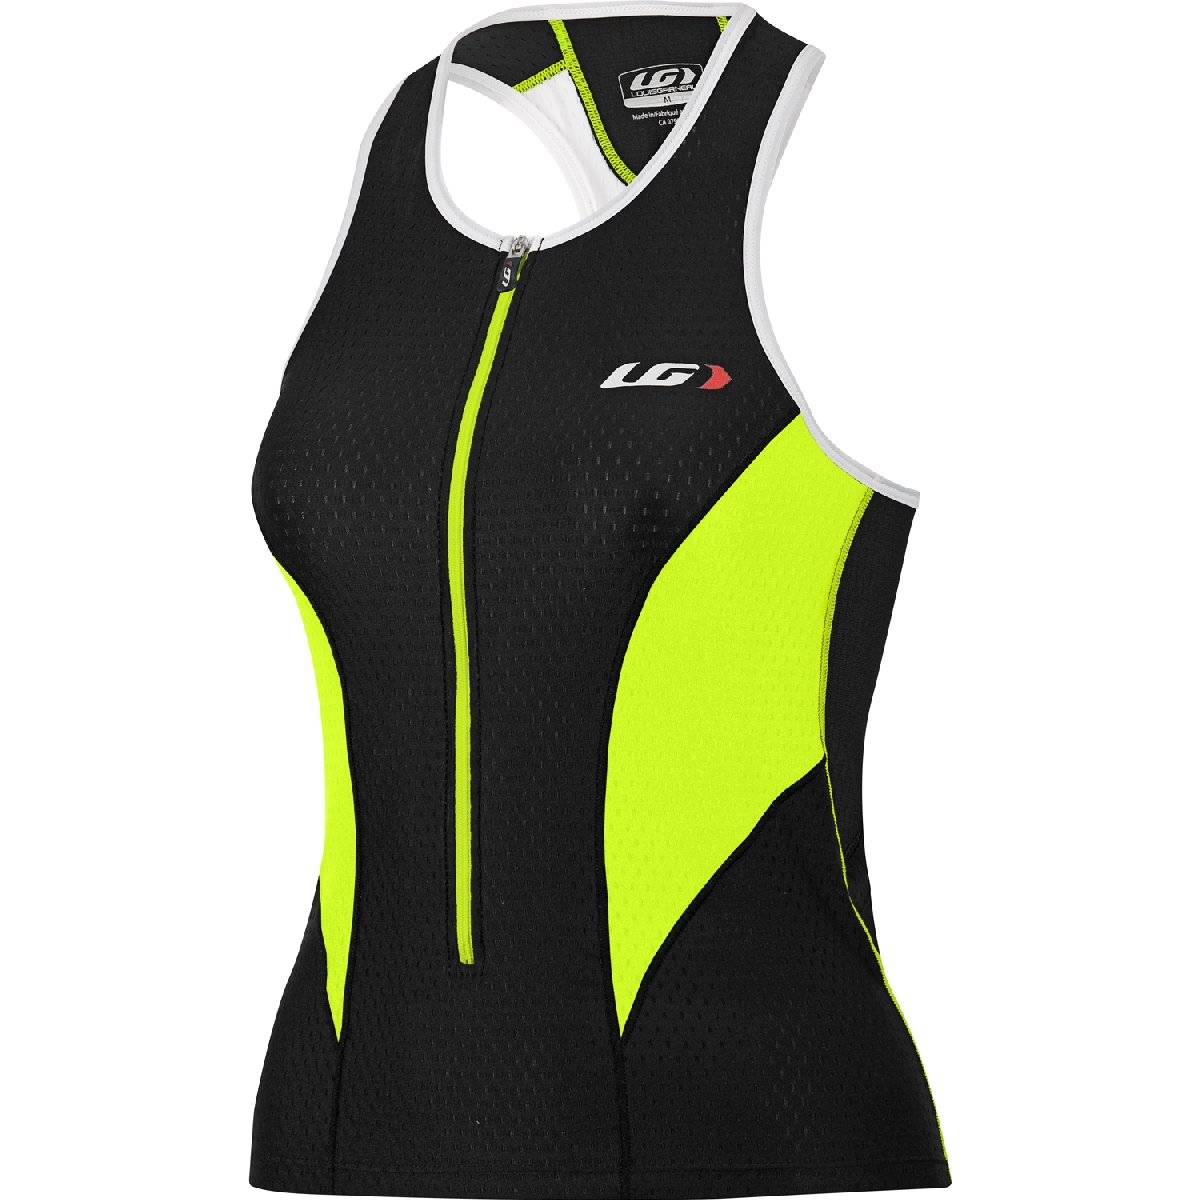 Louis Garneau Pro Triathlon Top Women's Size L Black FluoYellow U.S.A. & Canada